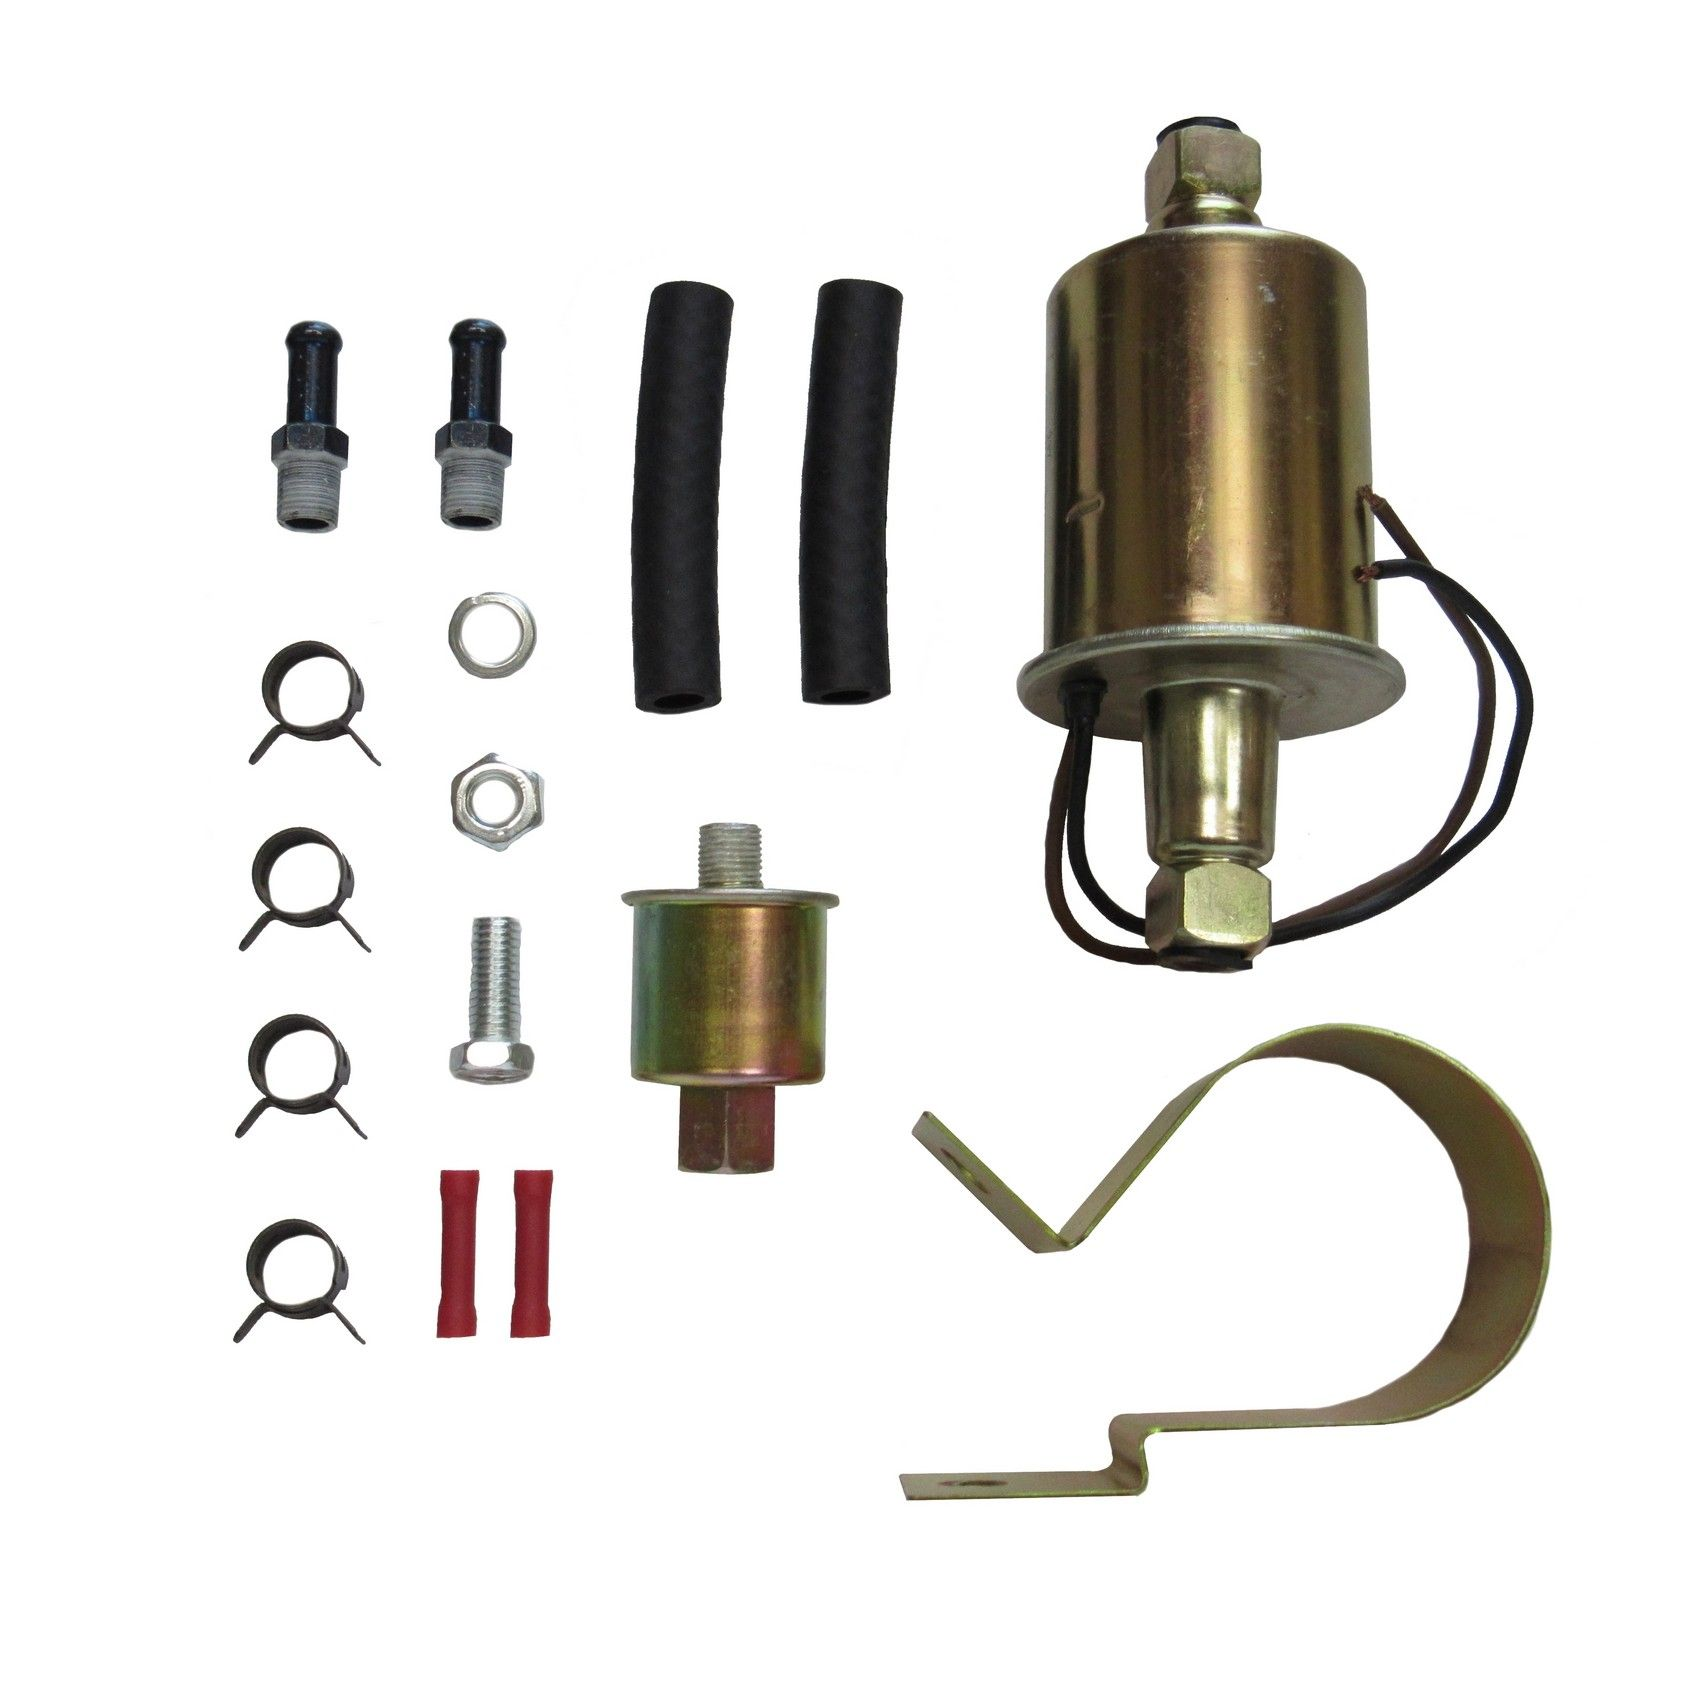 Jeep Wrangler Electric Fuel Pump Replacement Airtex Autobest 1989 F4027 Most Carbureted Applications Not Intended As A Direct Drop In For Your Oem